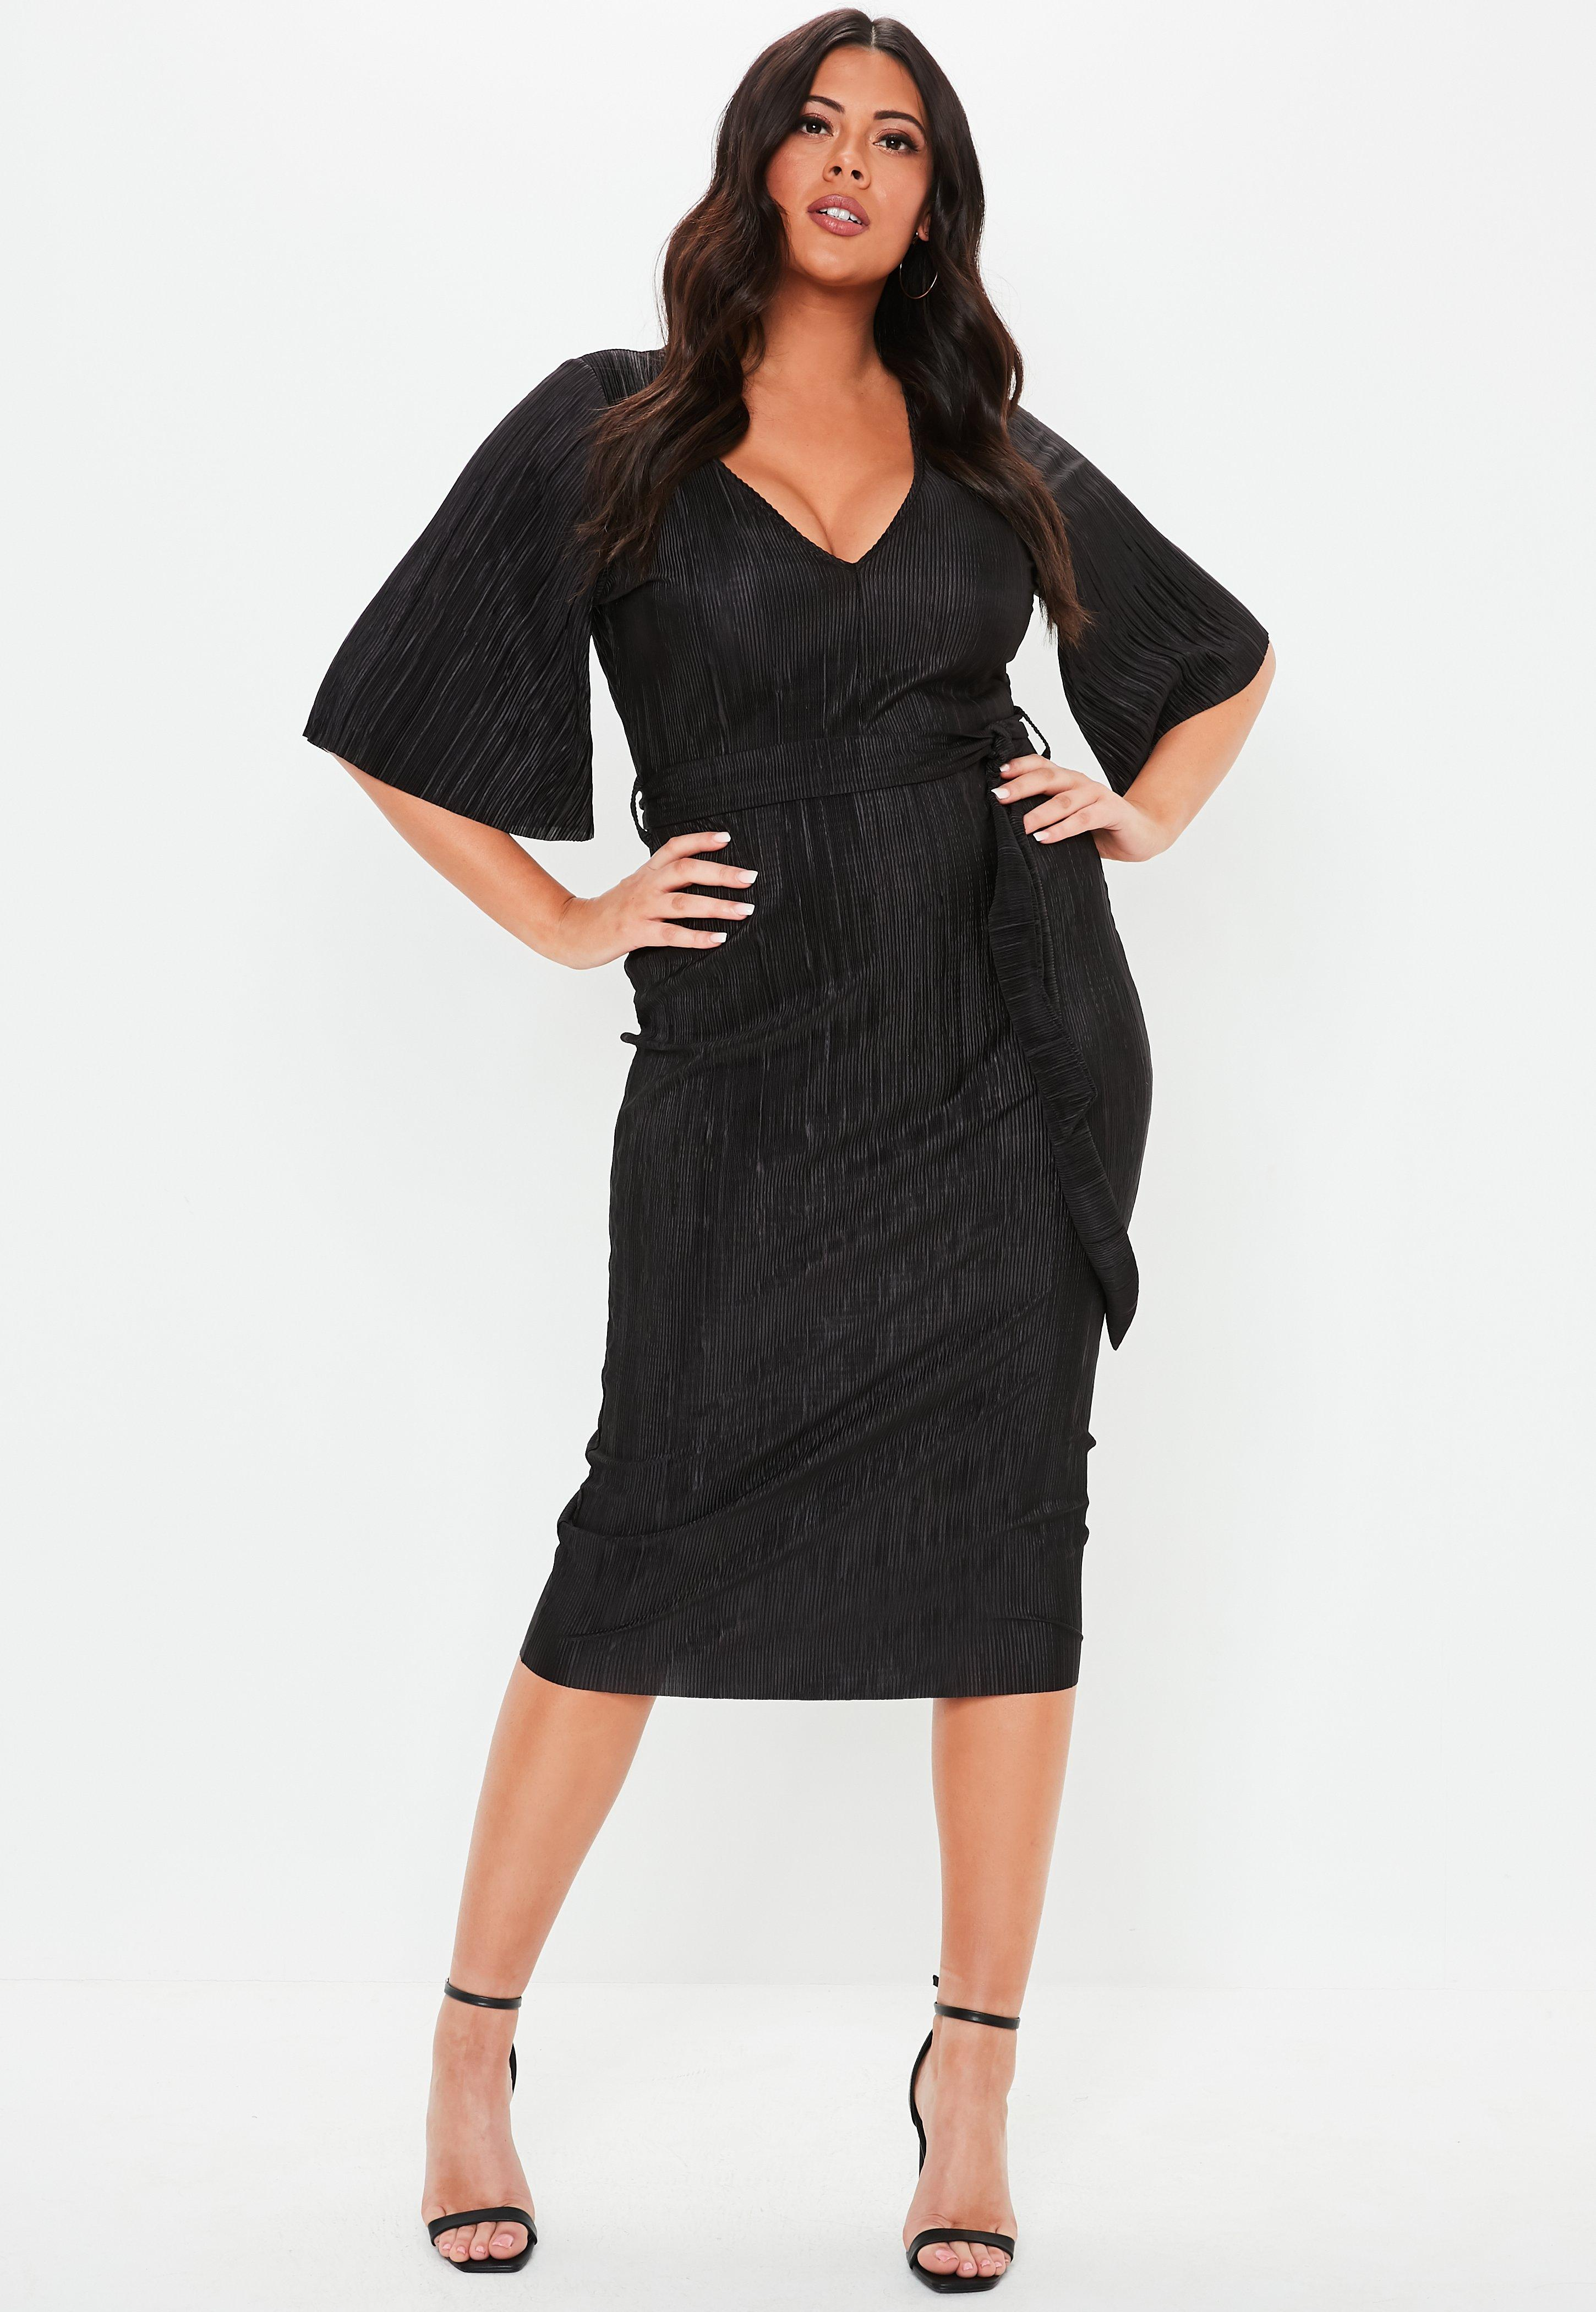 Short Formal Dresses with Thick Sleeves